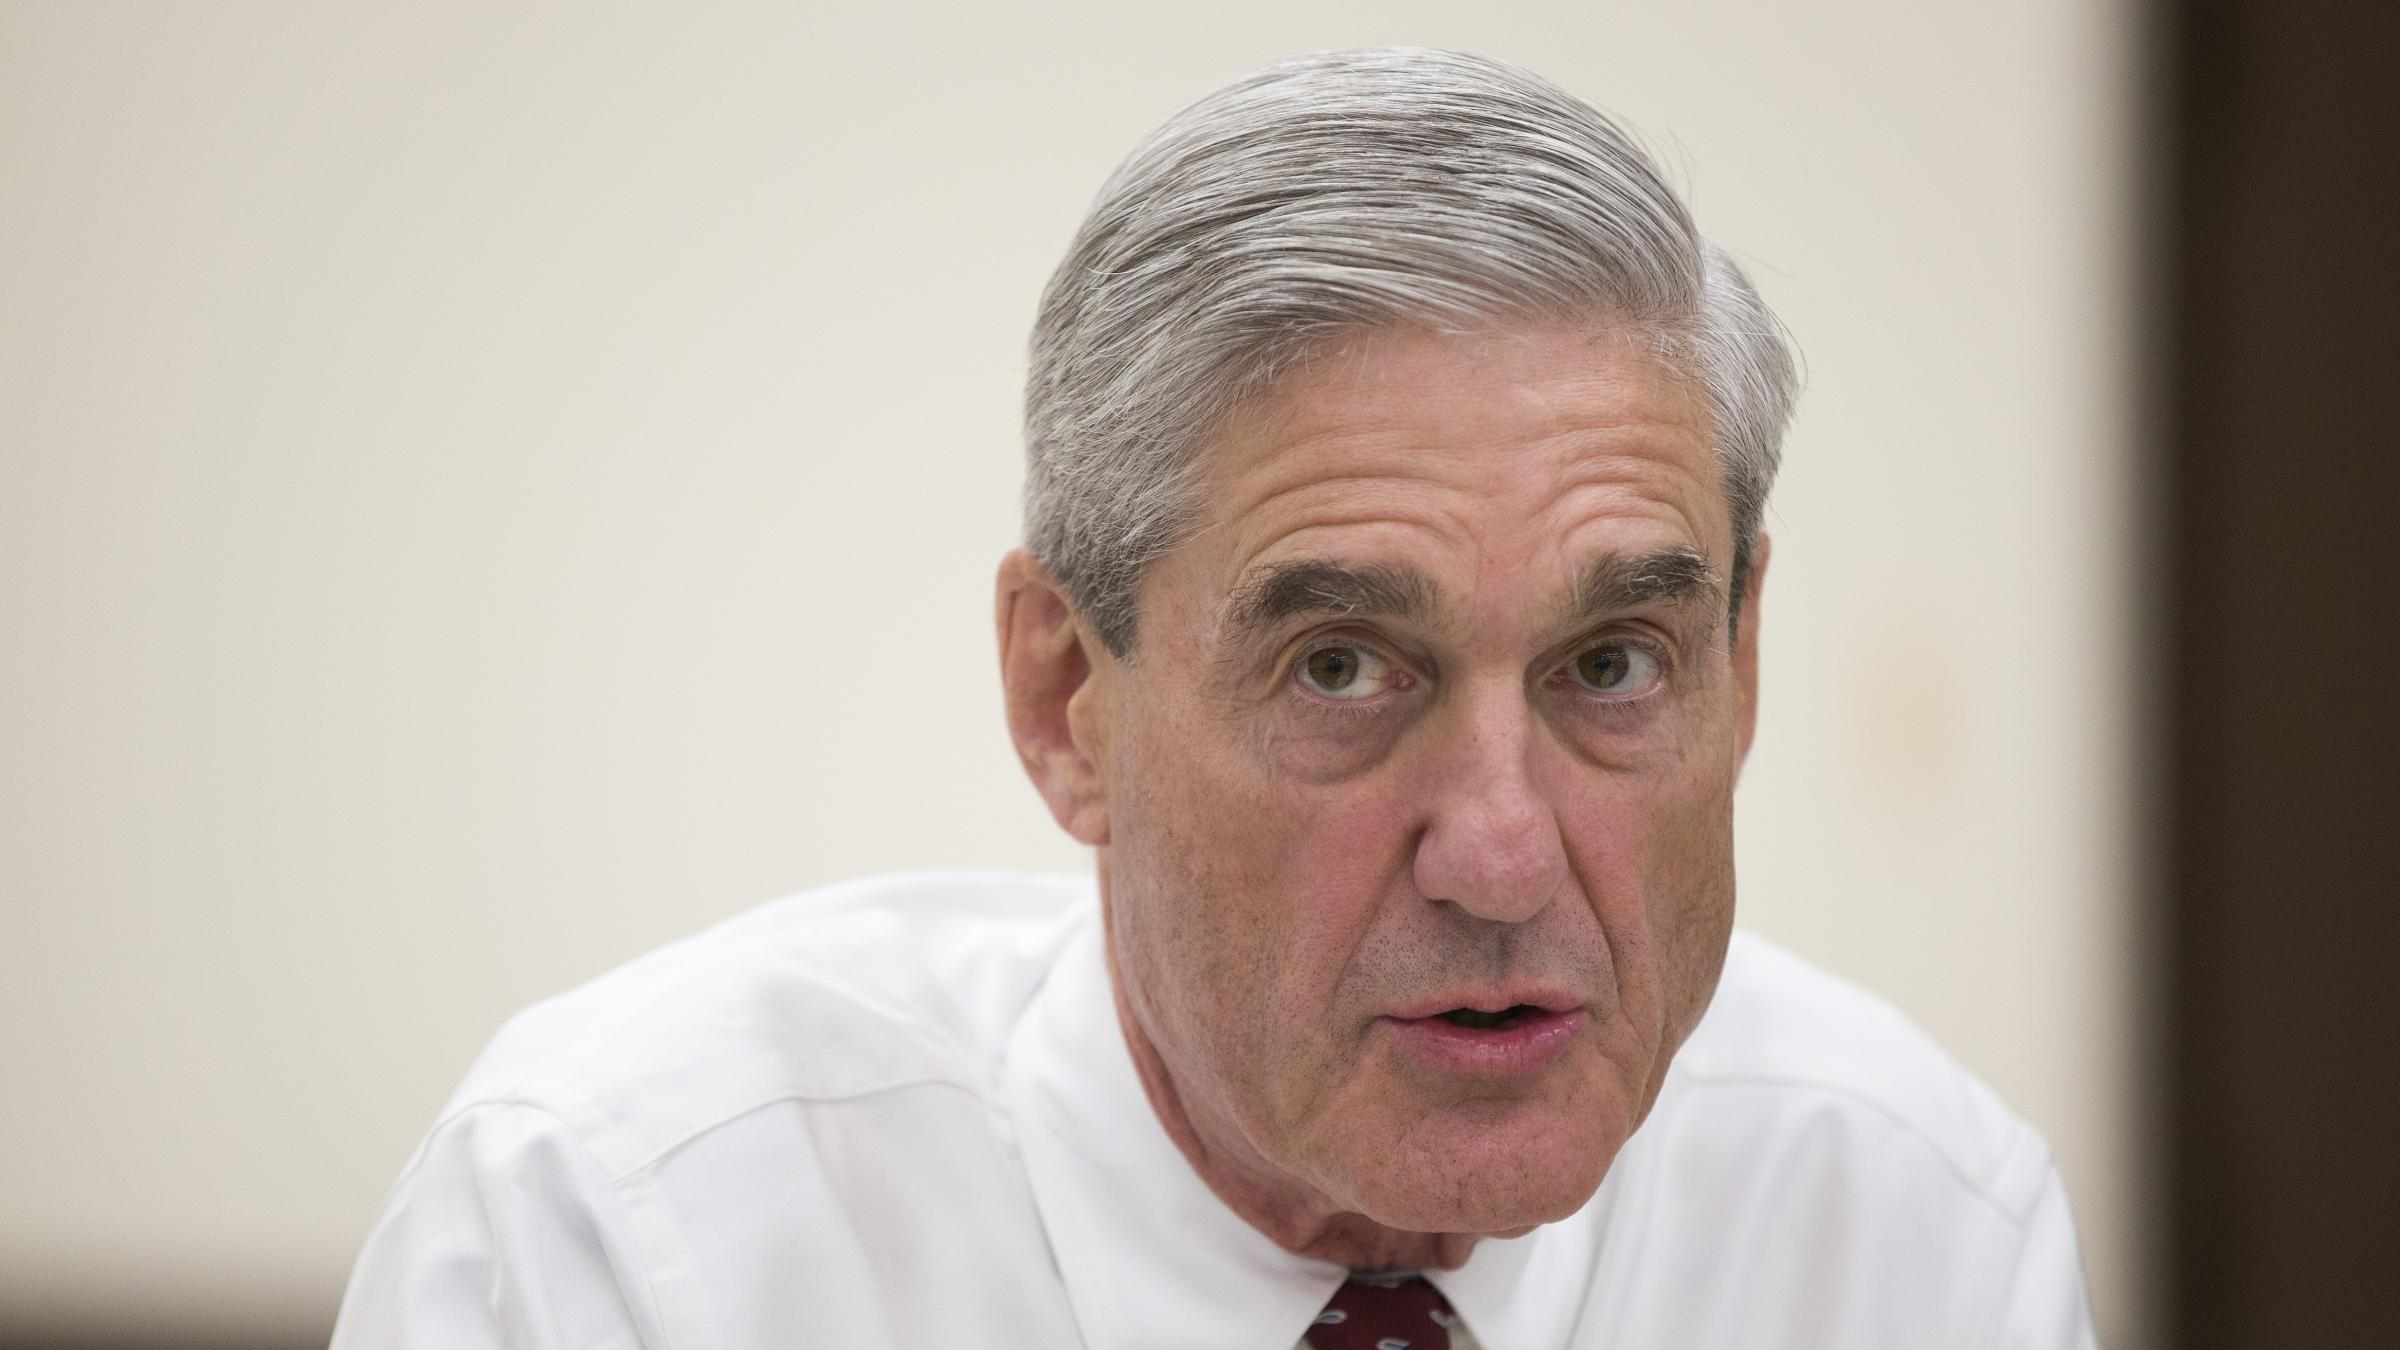 Trump Considering Firing Special Counsel? Just Another Example Of Stirring The Pot